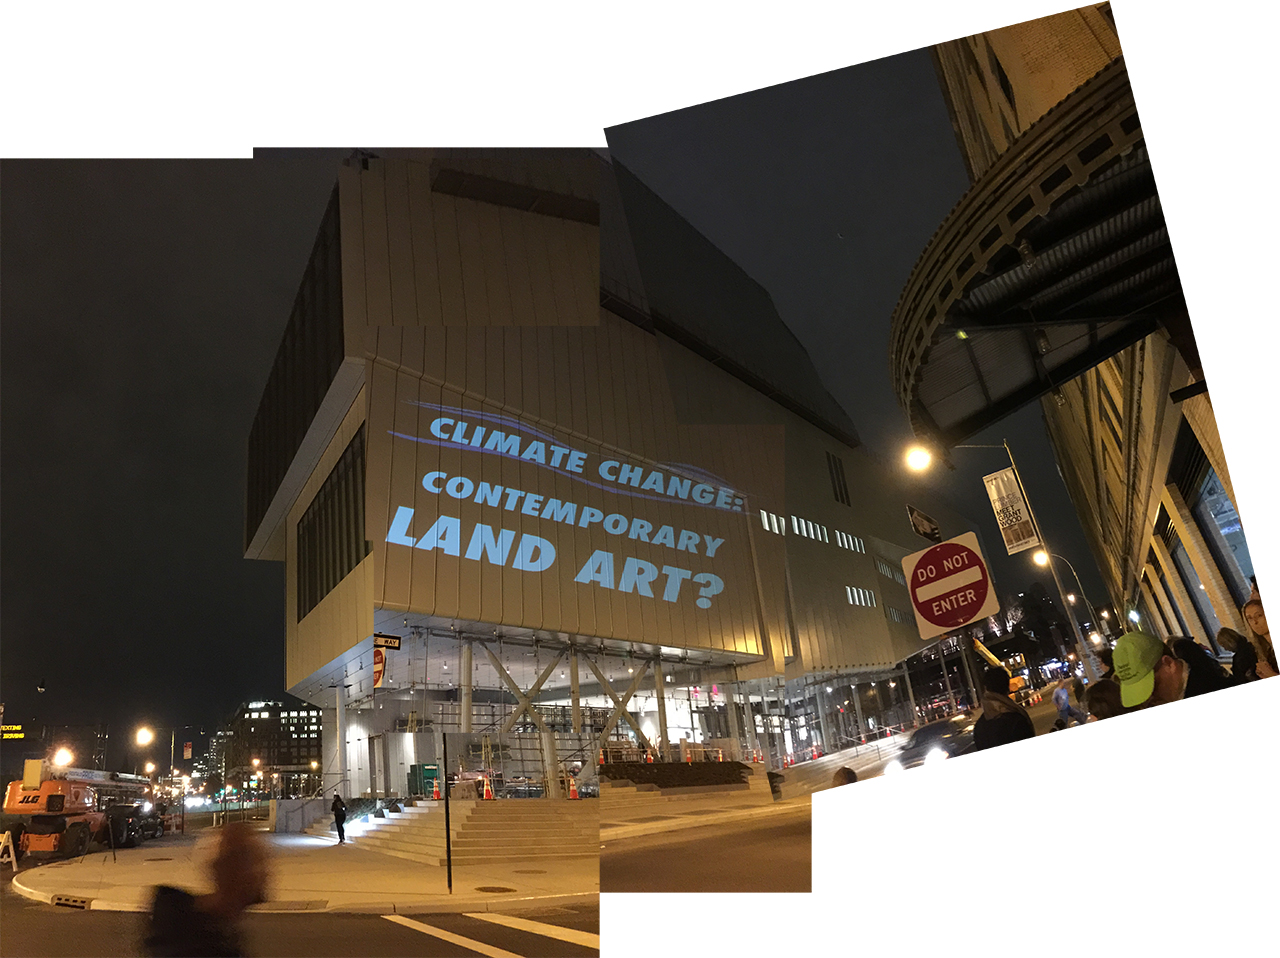 One of the projects on the facade of the new Whitney Museum during Tuesday night's #WhitneyPipeline inauguration. (all images by the author for Hyperallergic)